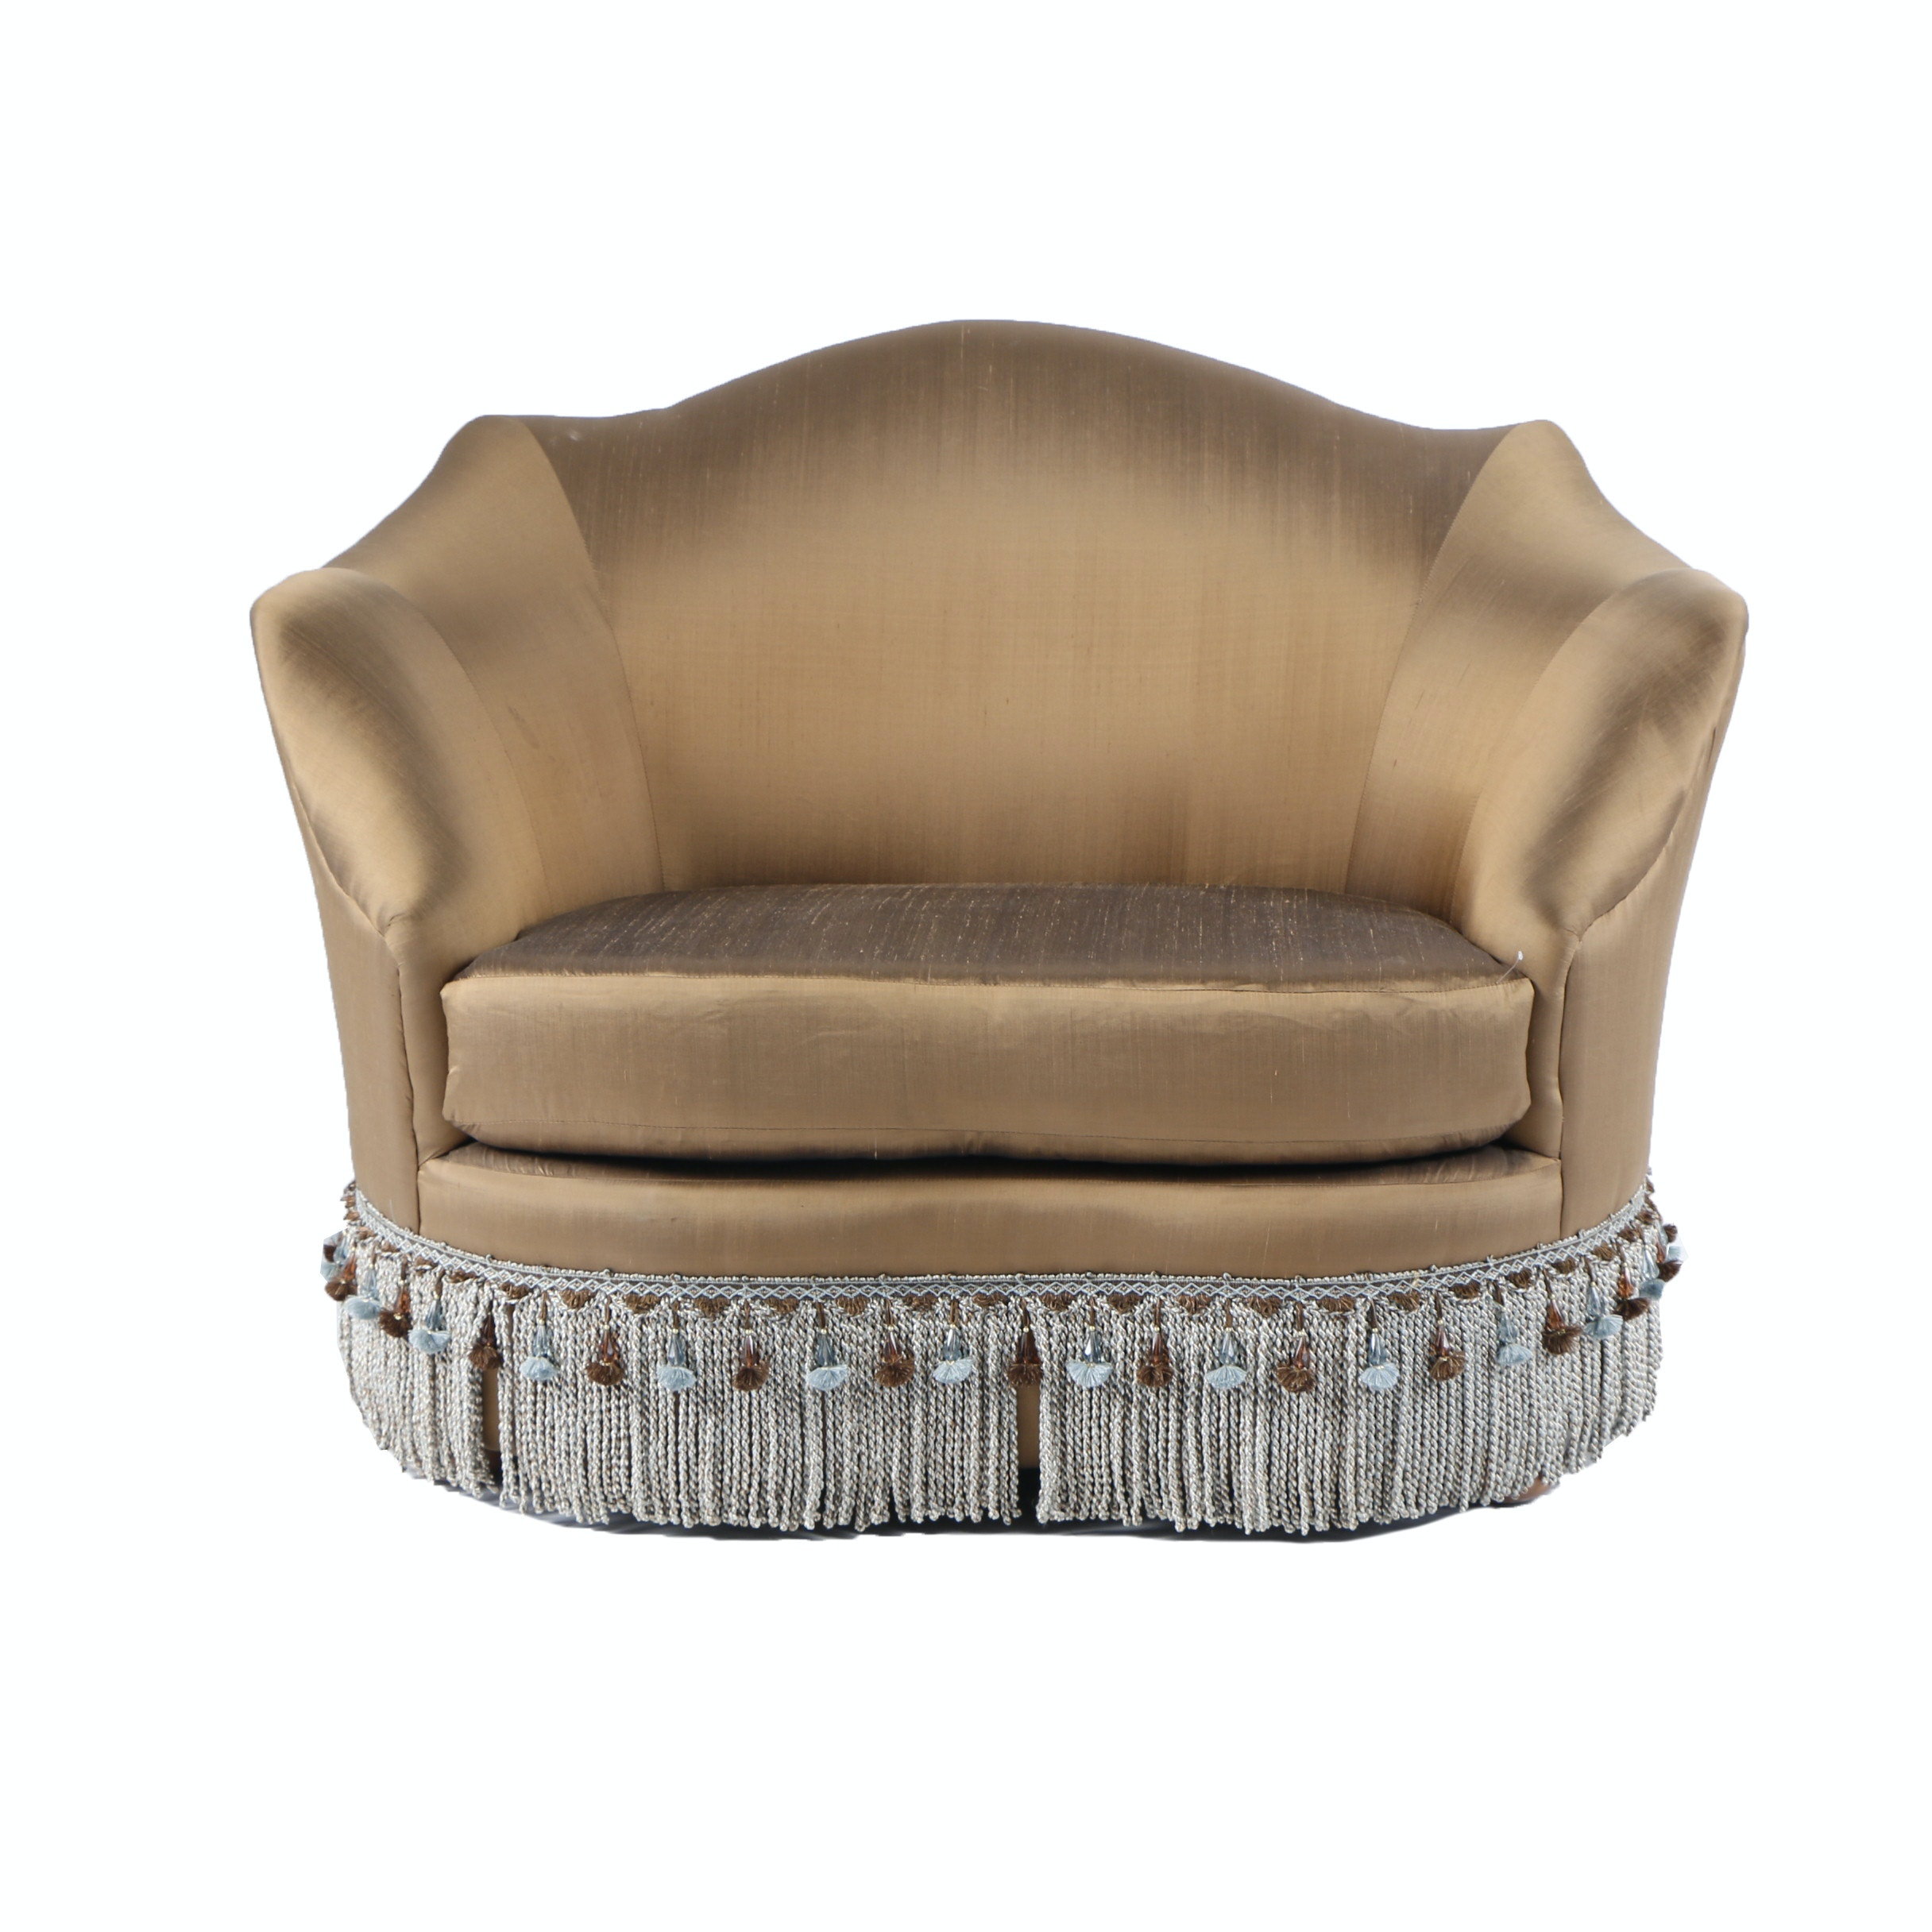 Lounge Chair In Bronze Satin Type Upholstery ...